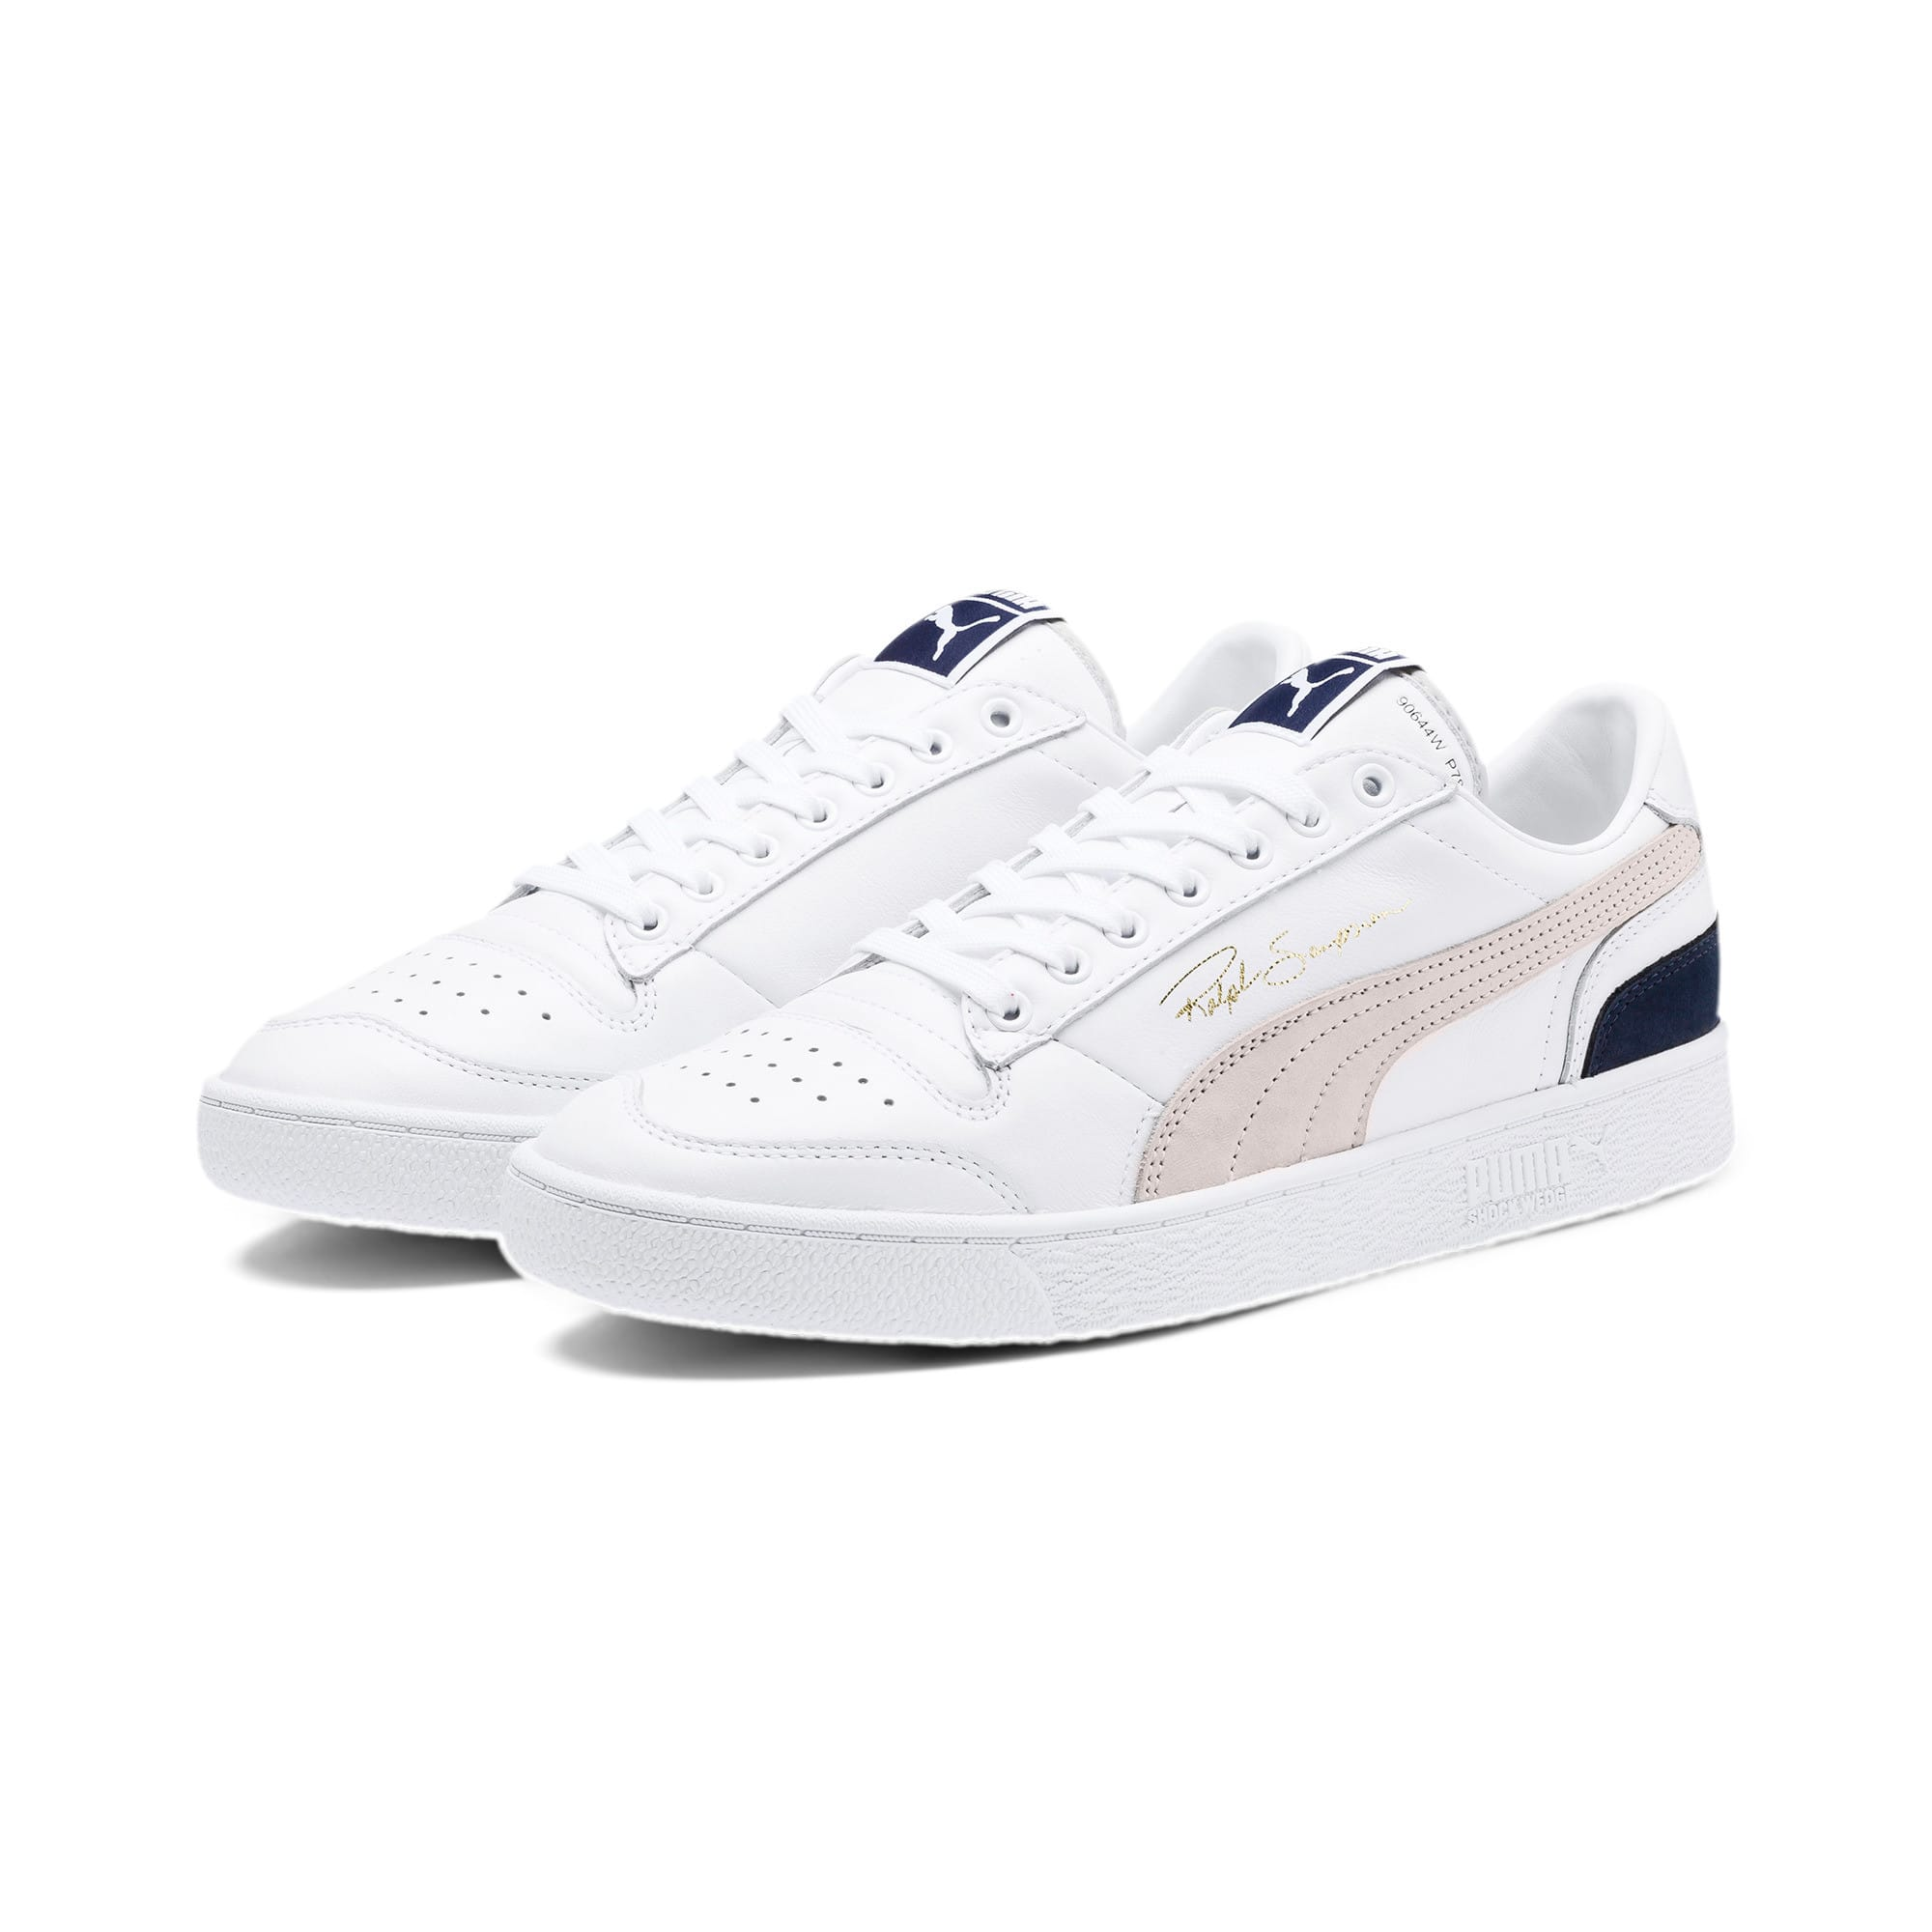 Thumbnail 3 of Ralph Sampson Low OG Trainers, Puma Wht-Gray Violet-Peacoat, medium